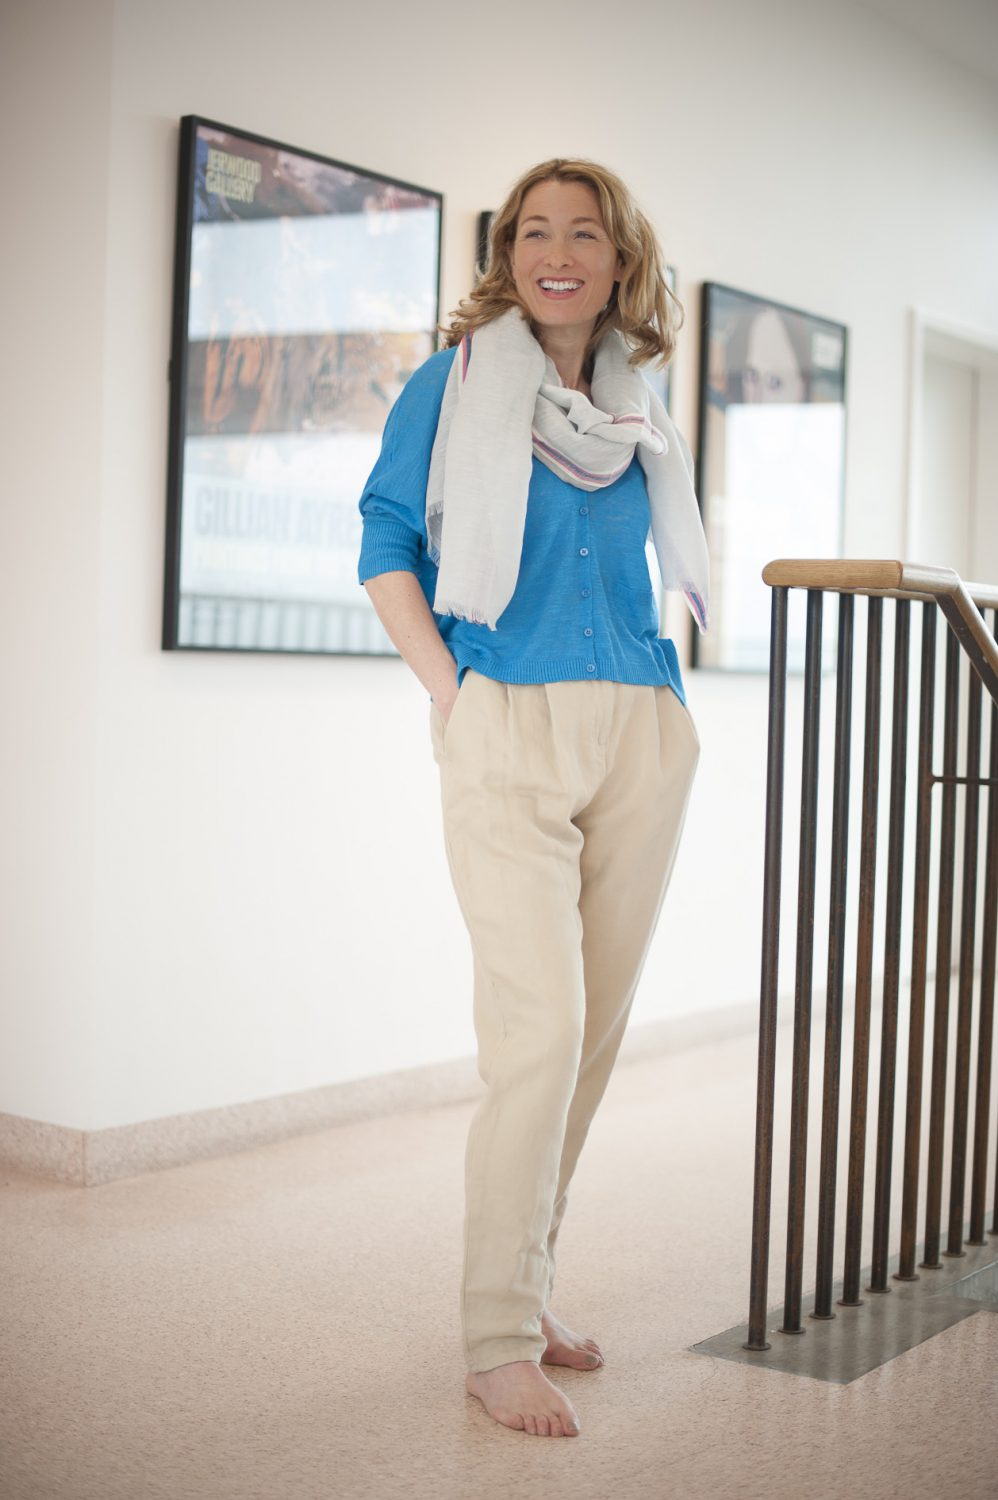 erse turquoise cardigan, £89, Otto D'ame beige chino trousers, £139, Who's Wearing What Boutique, St Leonards-on-Sea 01424 272925 www.whoswearingwhat-boutique.co.uk; Seasalt scarf, £29.95, Charity Farm Countrystore, Cranbrook 01580 713189 www.charityfarmcountrystore.co.uk